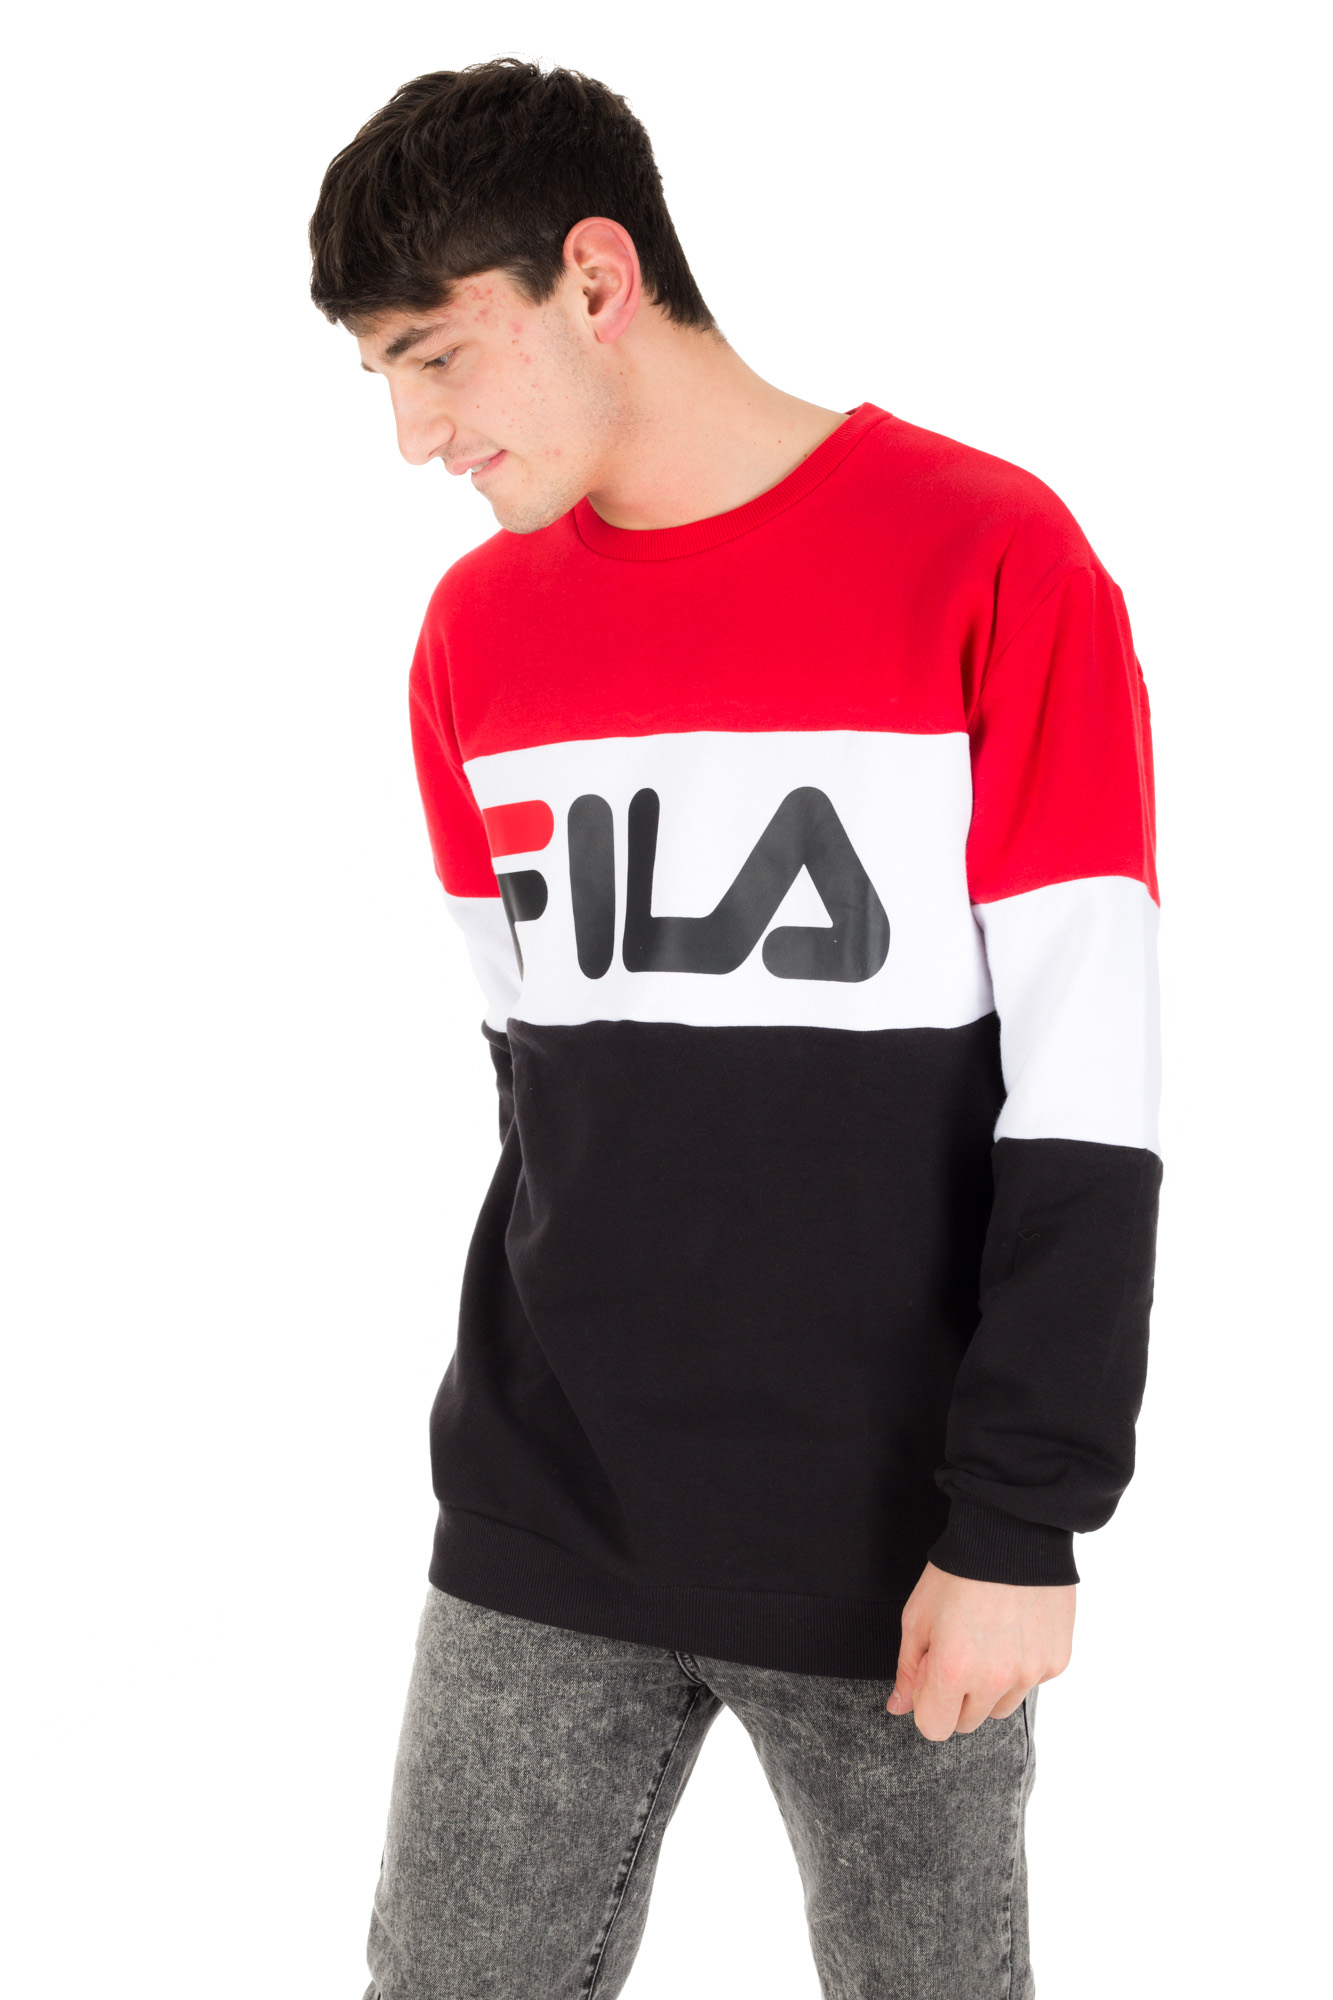 Fila - Unisex Sweatshirt with three colour